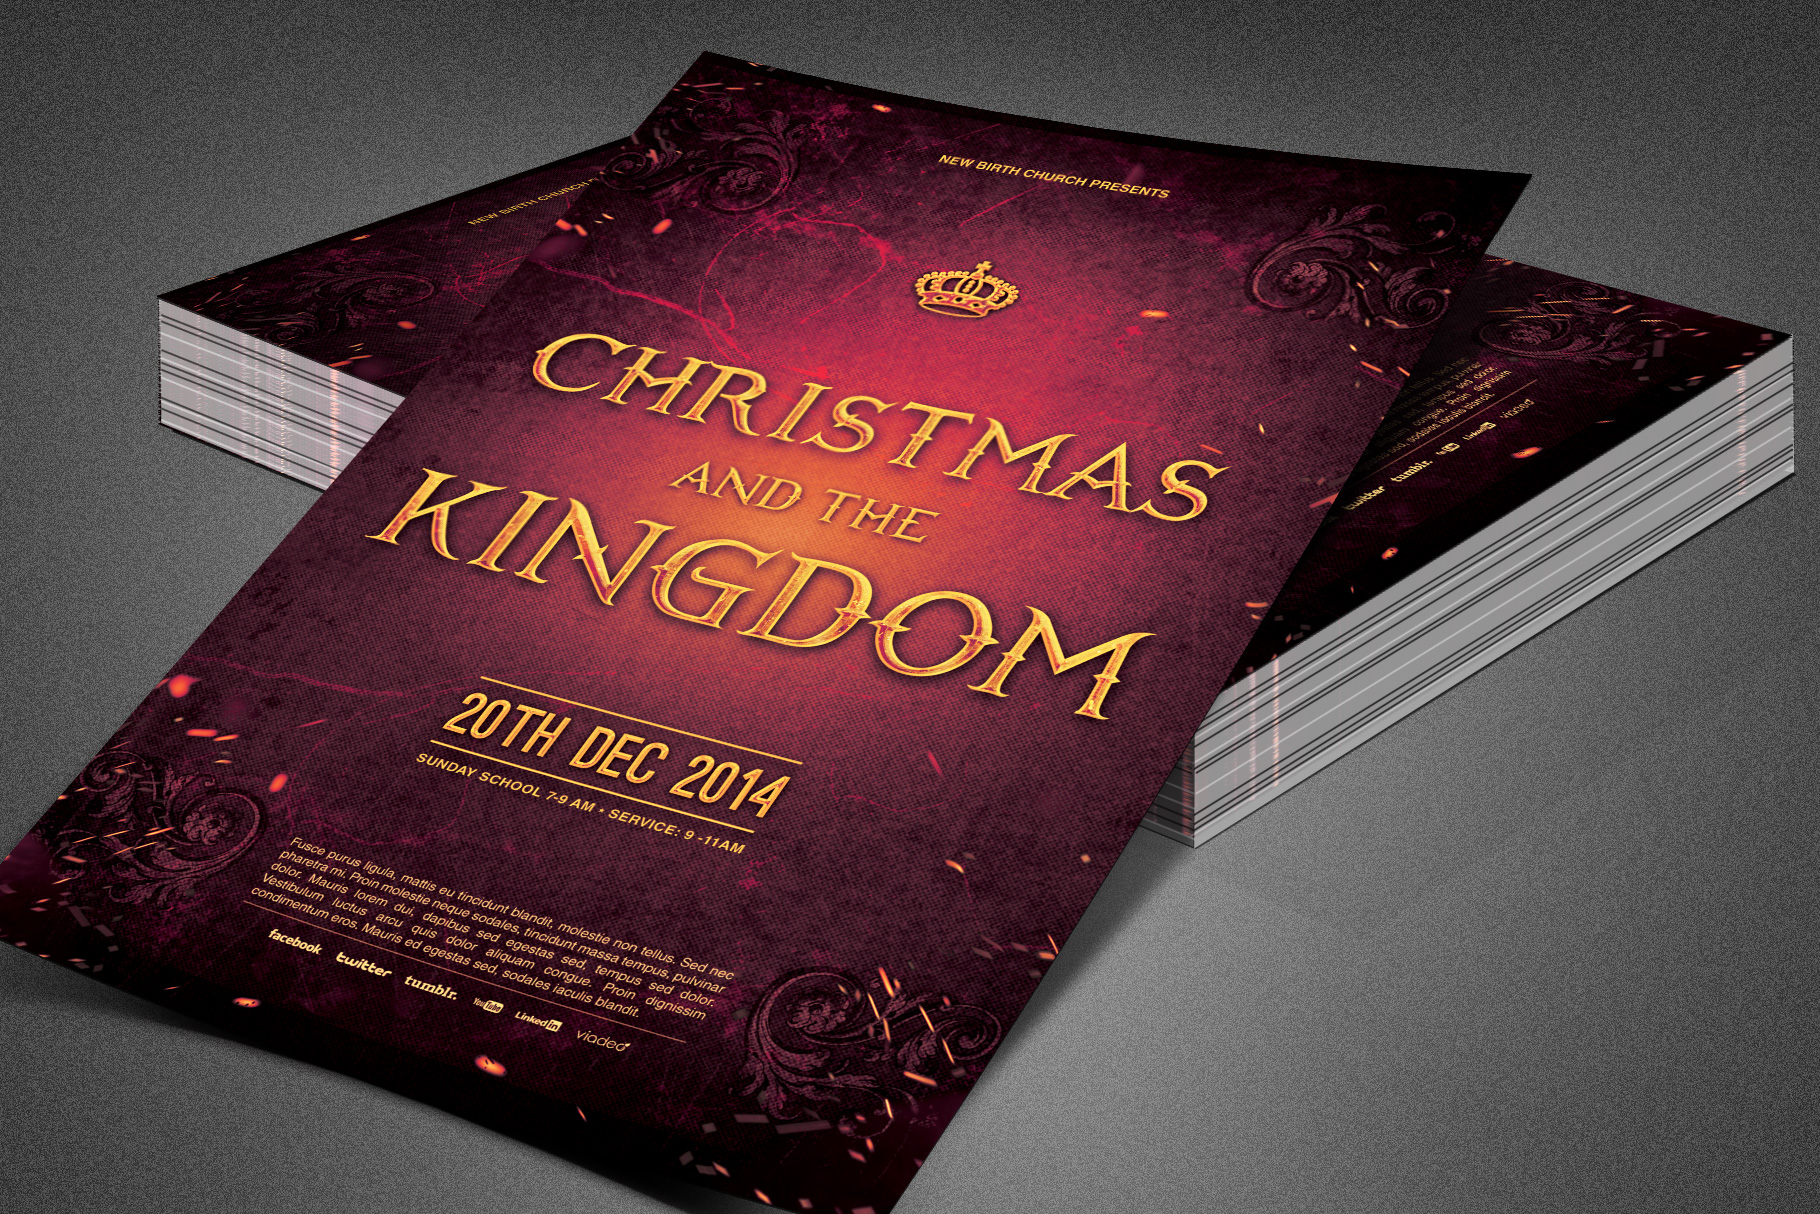 Christmas and the Kingdom Flyer example image 3